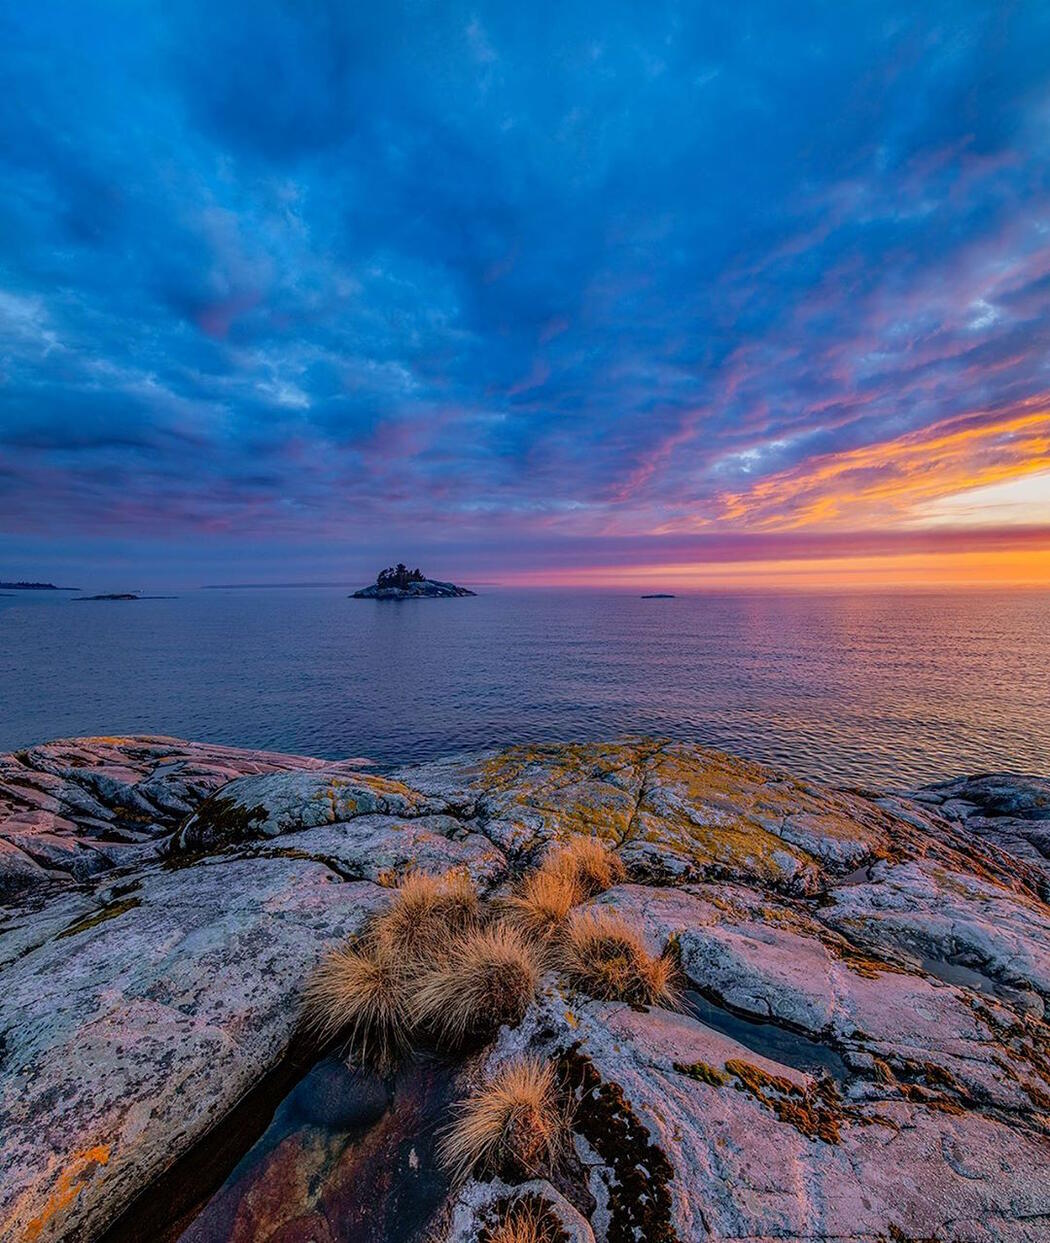 Colourful sunset over Lake Superior with smooth rocks in foreground.